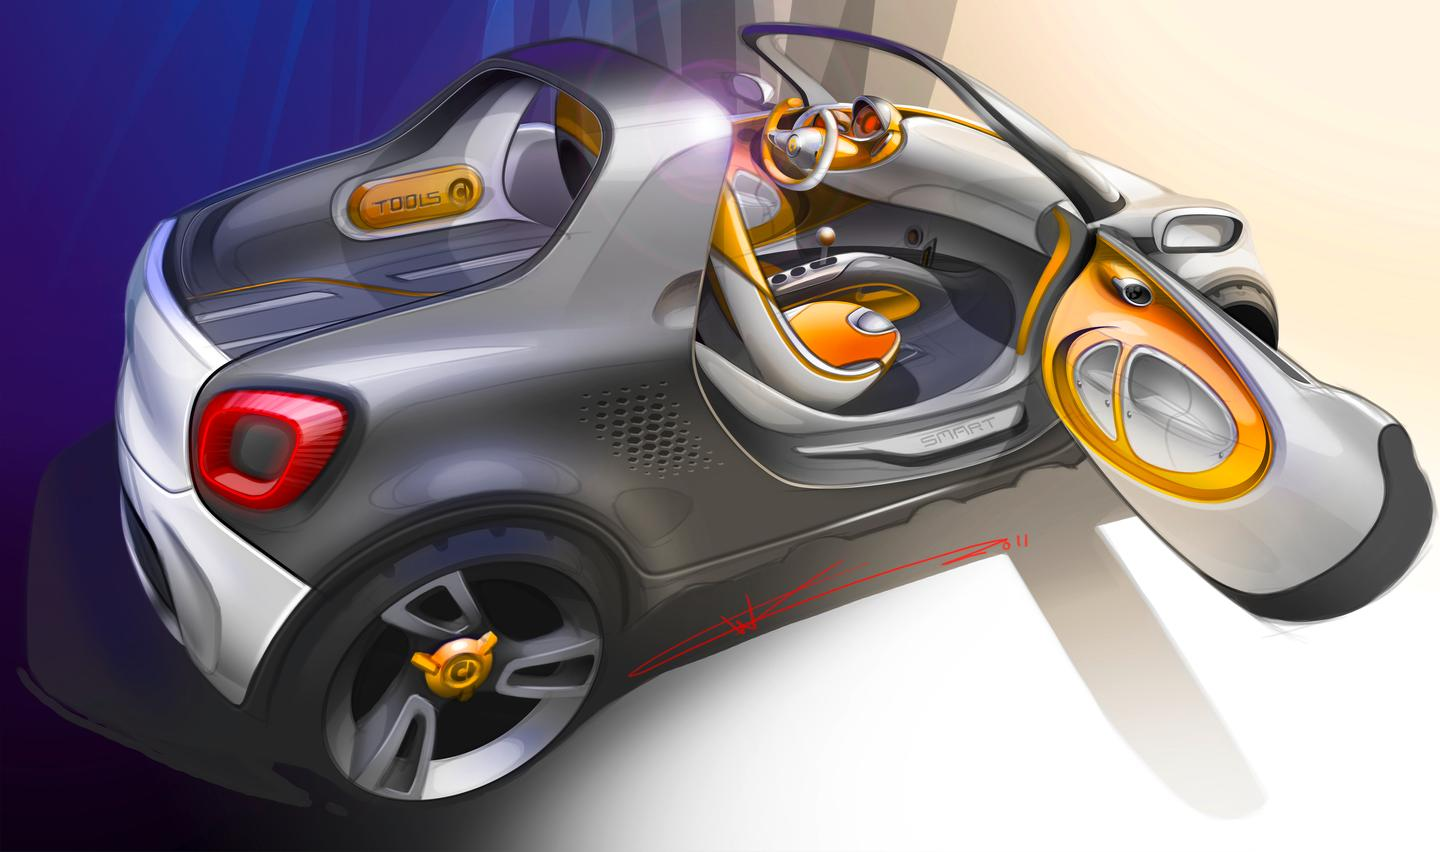 The smart for-us is a concept car, that combines a smart fortwo with a pickup truck